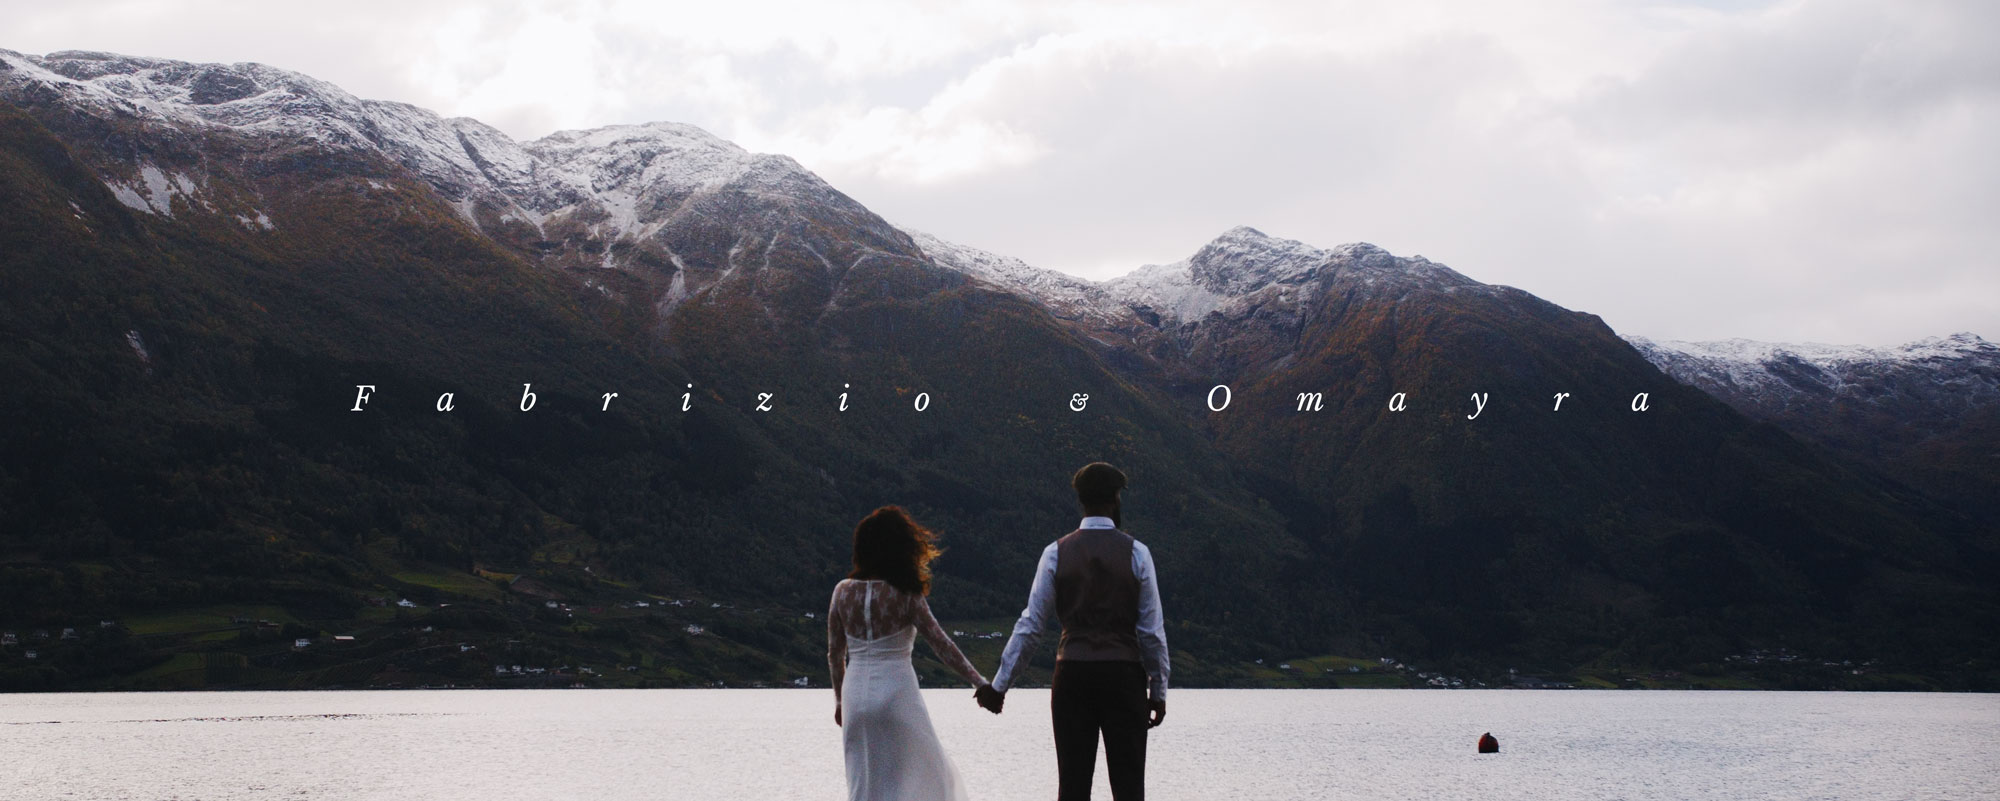 elopement-bruiloft-noorwegen-trolltunga-wedding-norway-videograaf-dreamers-blackmagic-bmpcc4k-fabrizio-omayra